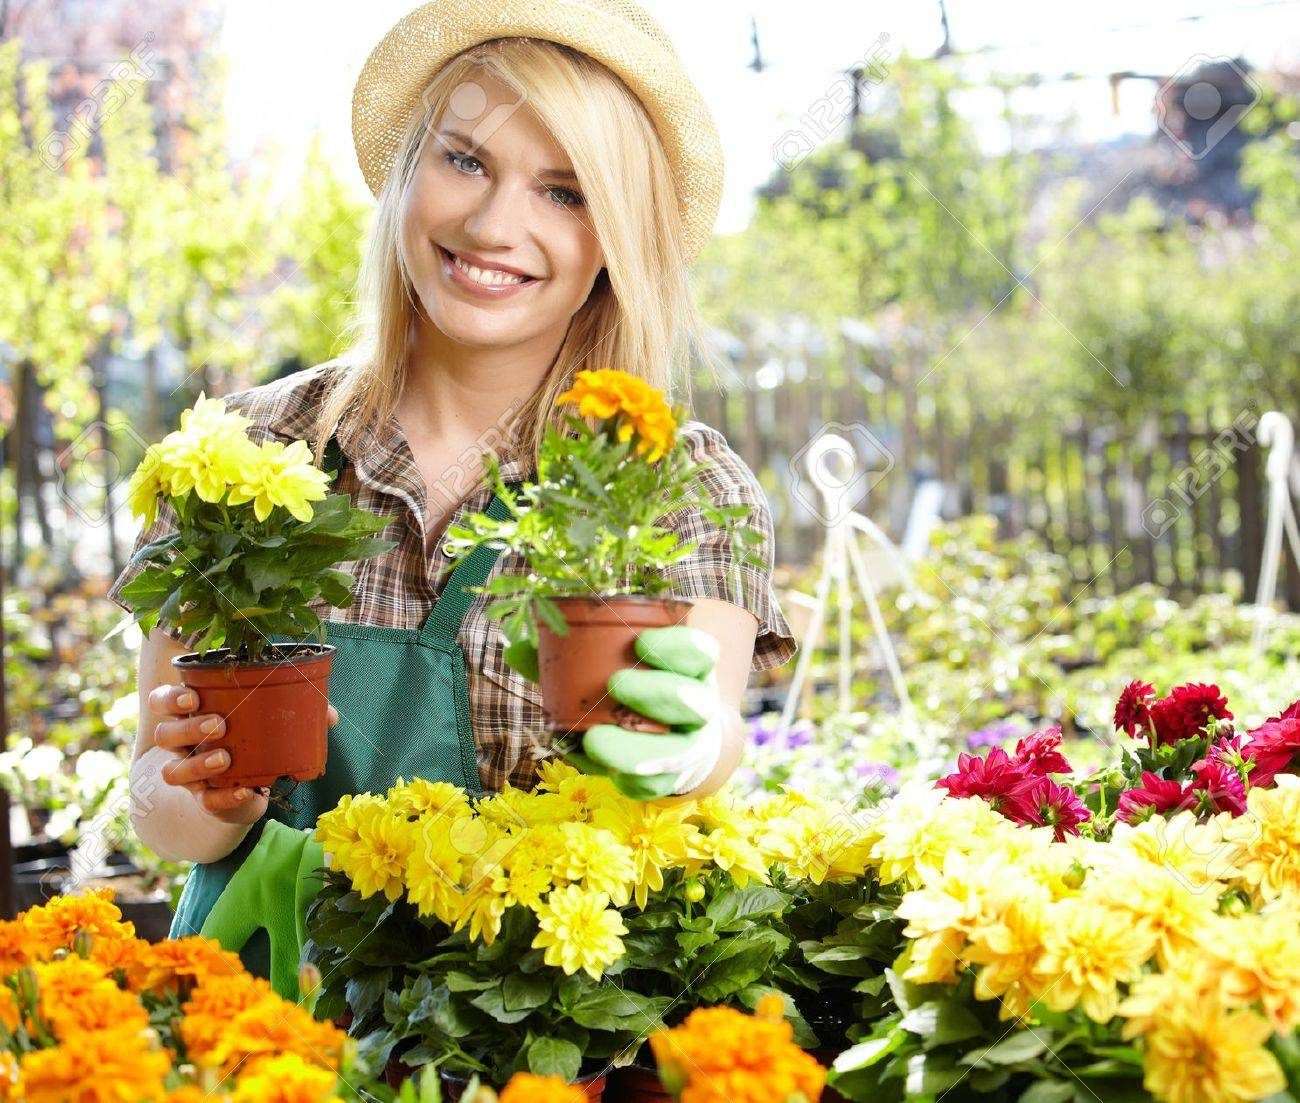 Florists woman working with flowers at a greenhouse Stock Photo - 20864610